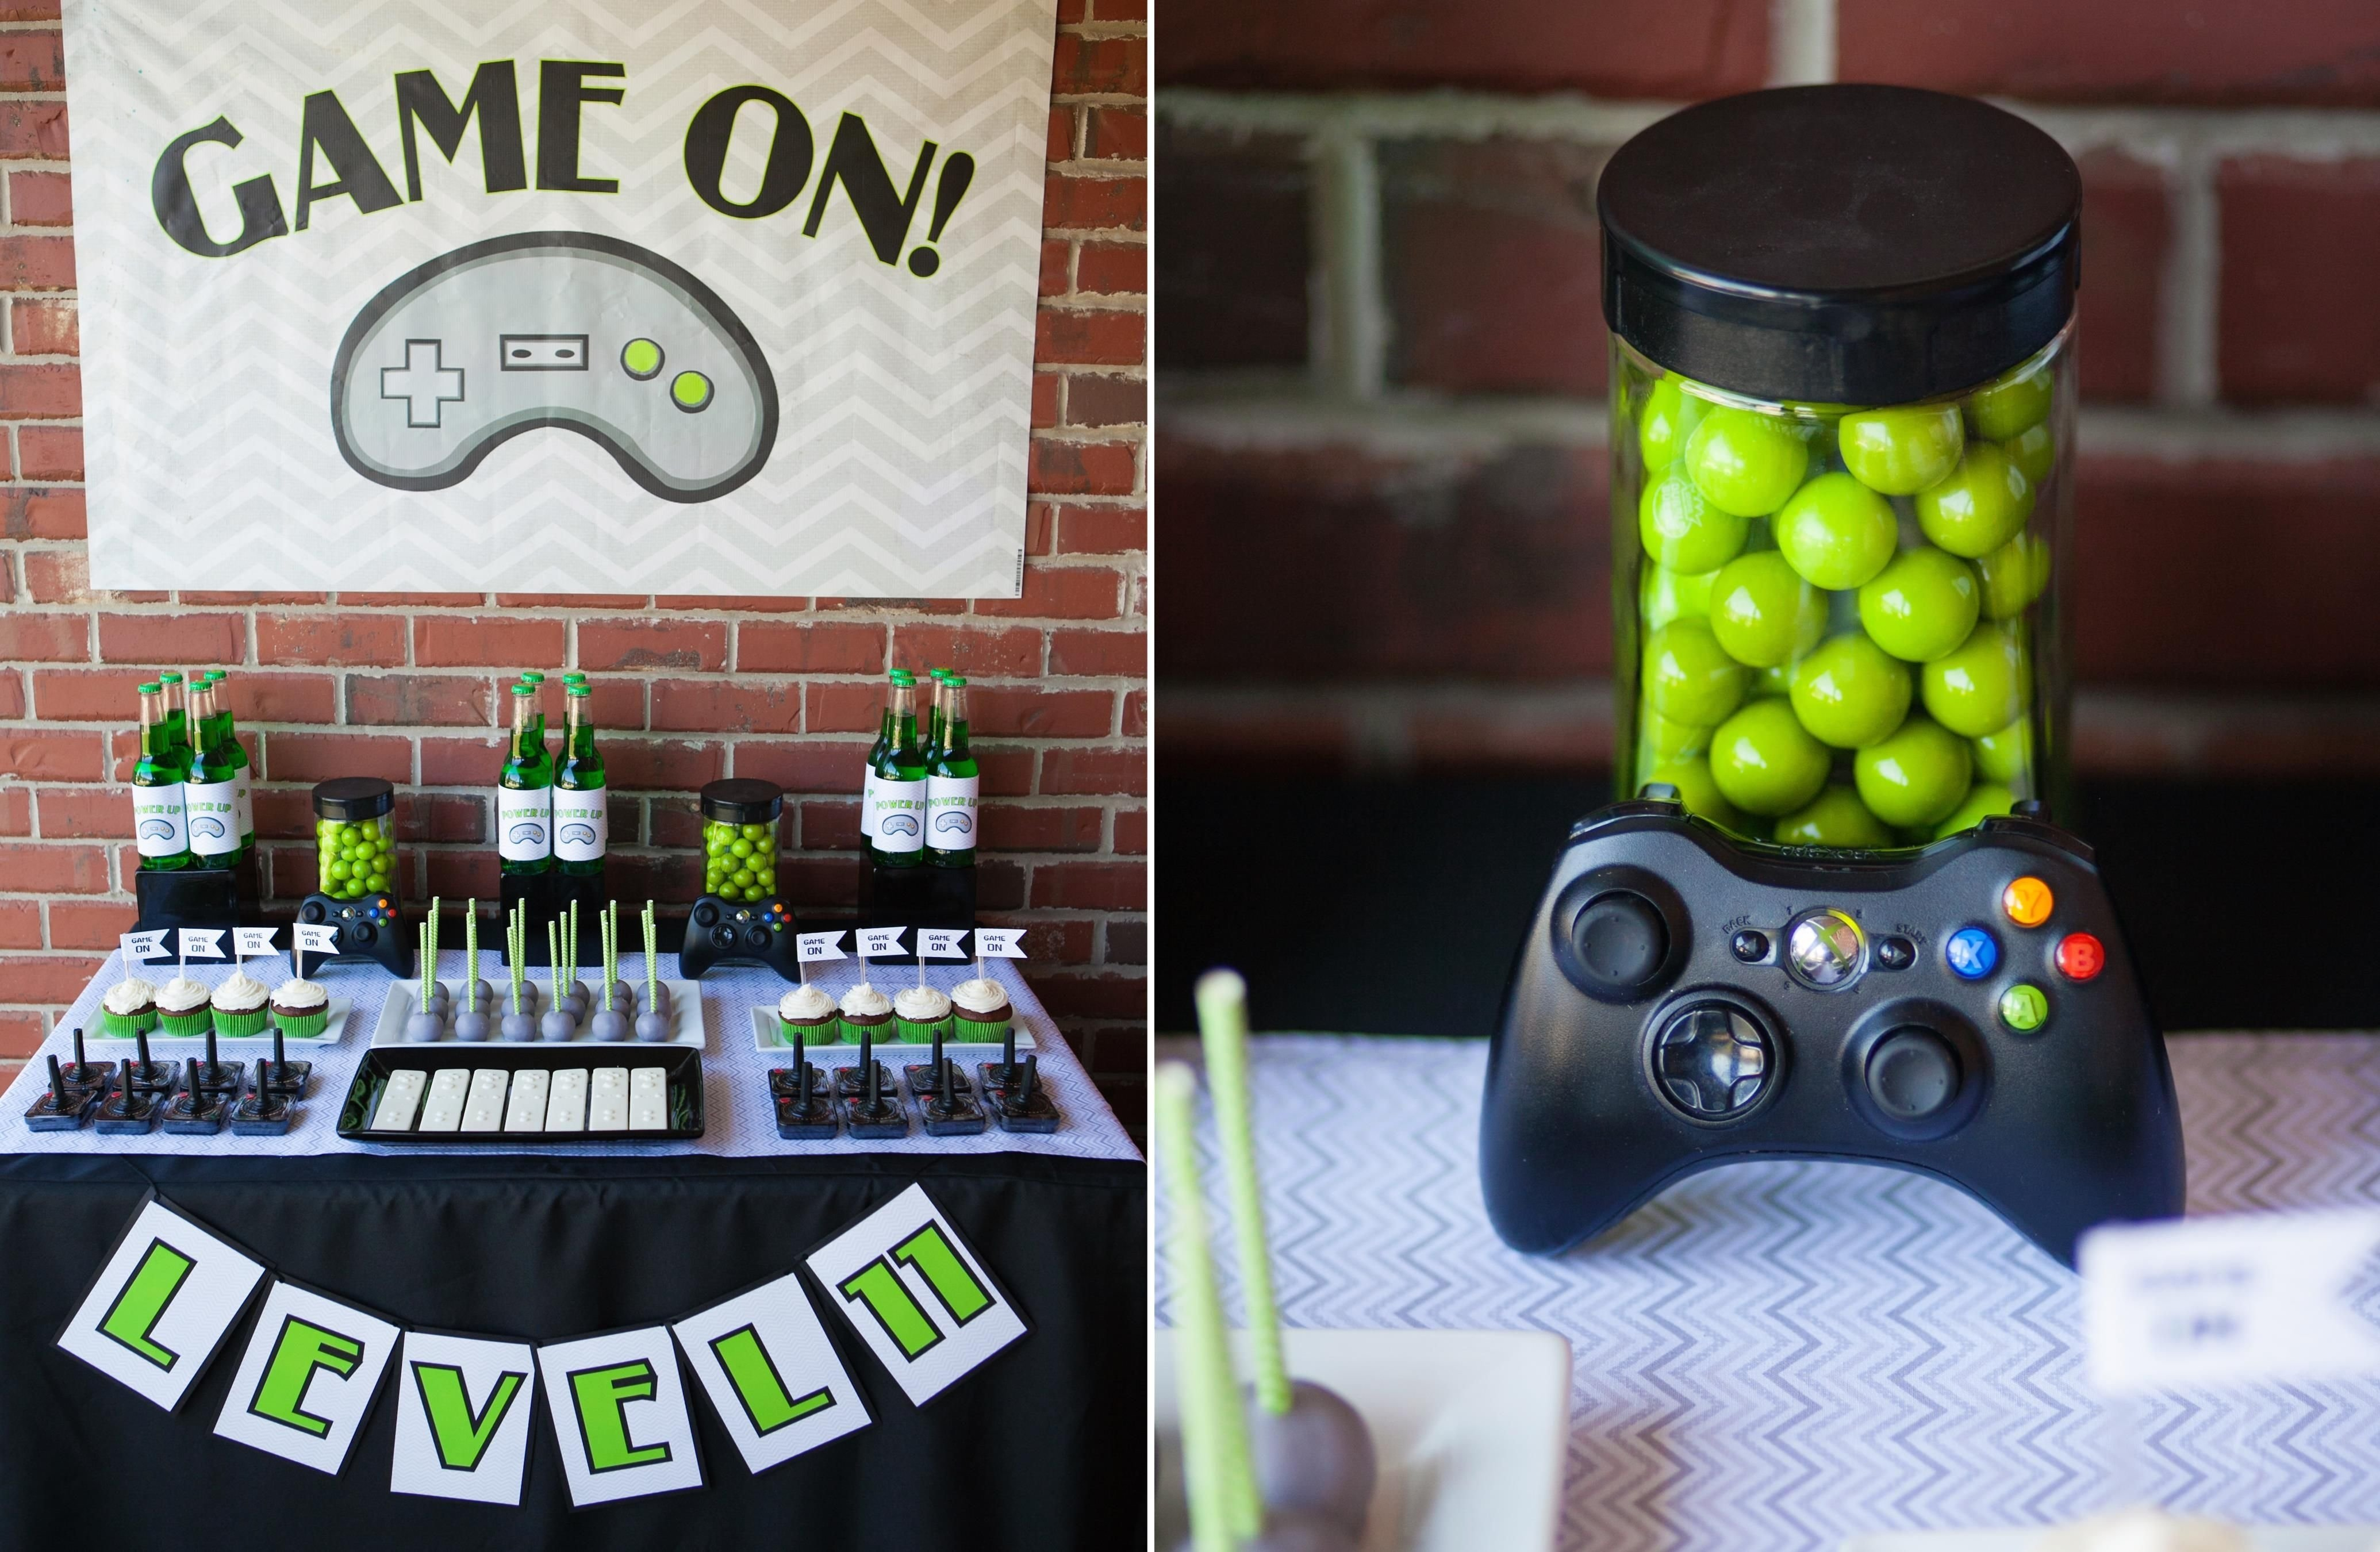 10 Lovely Video Game Birthday Party Ideas video game birthday 3 video game crafts pinterest video 2020